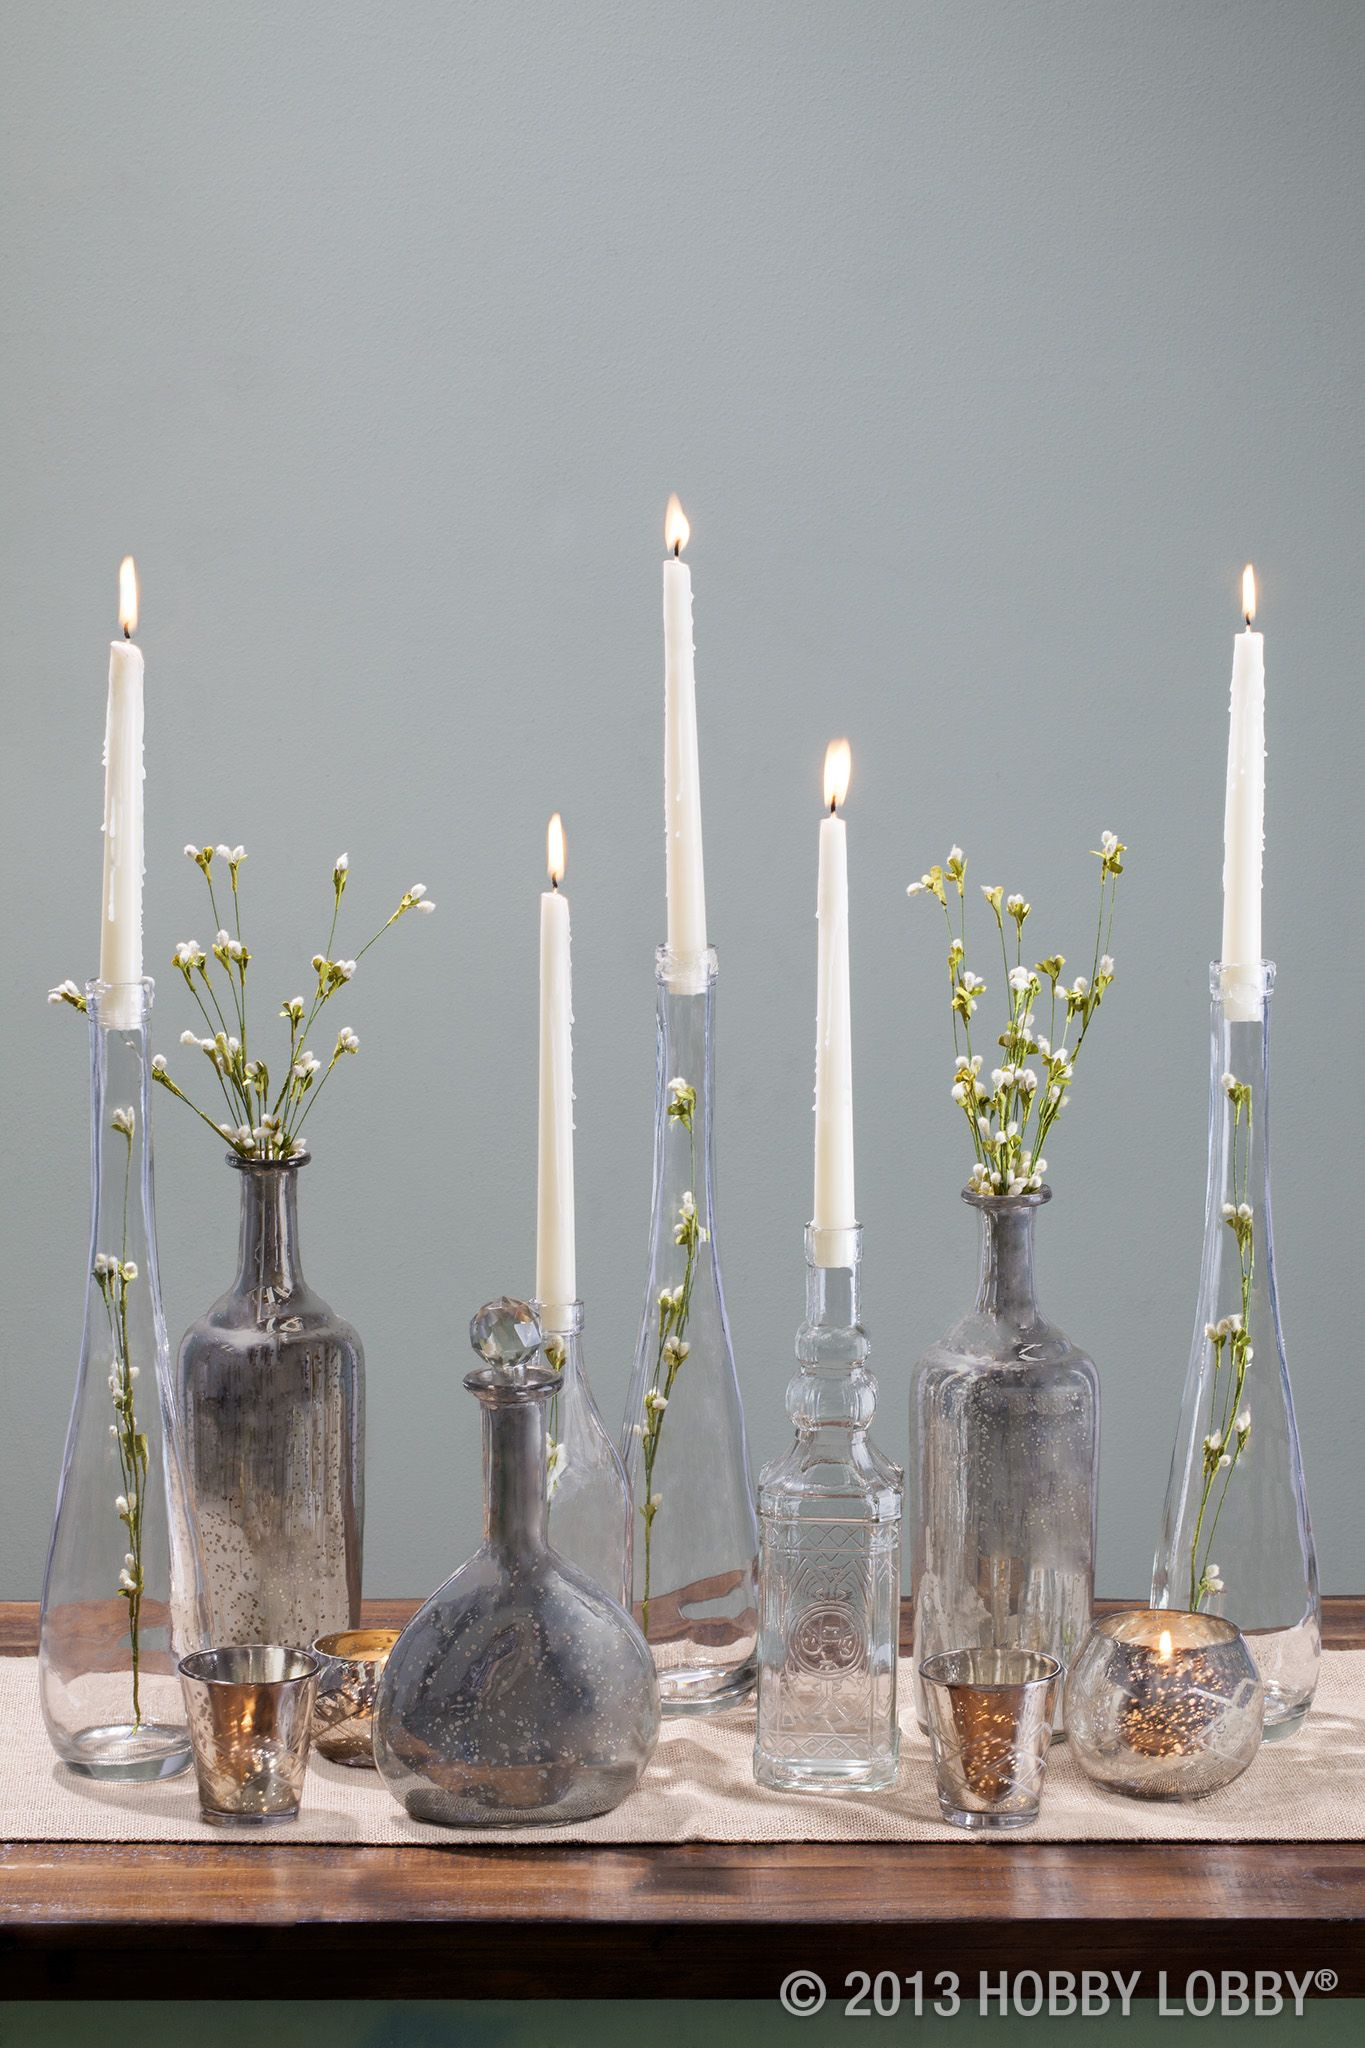 Hobby Lobby Cylinder Vases Of Brighten Up An Entryway Table with Large Glass Vases Displaying In Brighten Up An Entryway Table with Large Glass Vases Displaying Candles and Greenery Vlastnoruana Dekoracehobby Lobbylobbiesvanoce